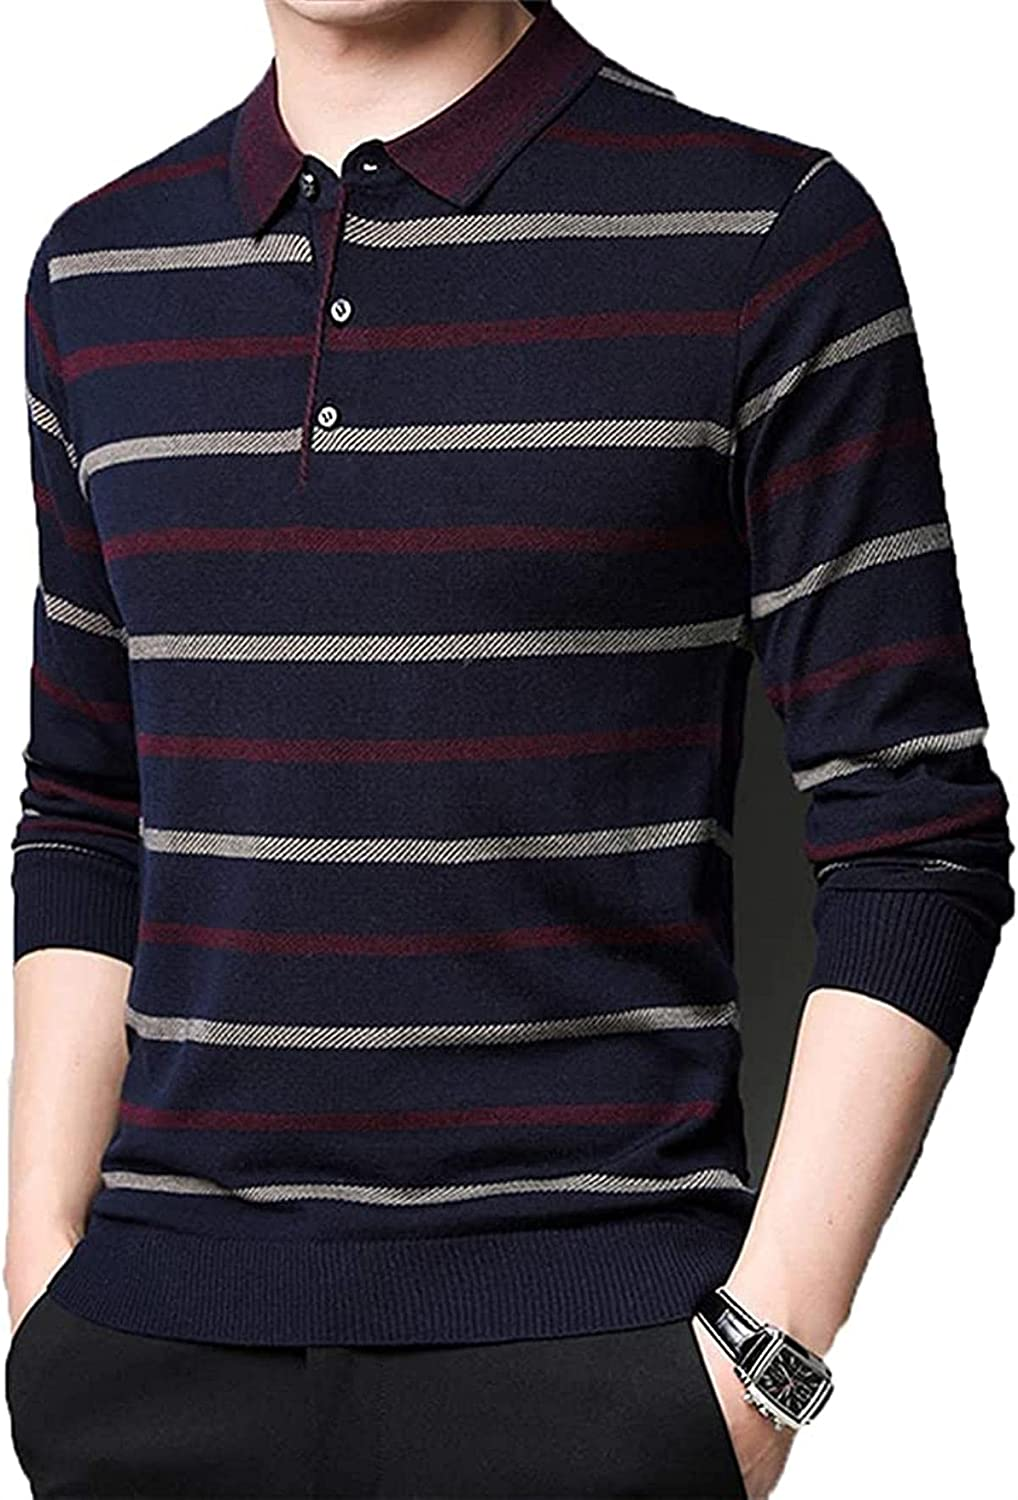 JOAOL Men Striped Sweaters Clothes Streetwear Turn-Down Collar Pullover Clothing